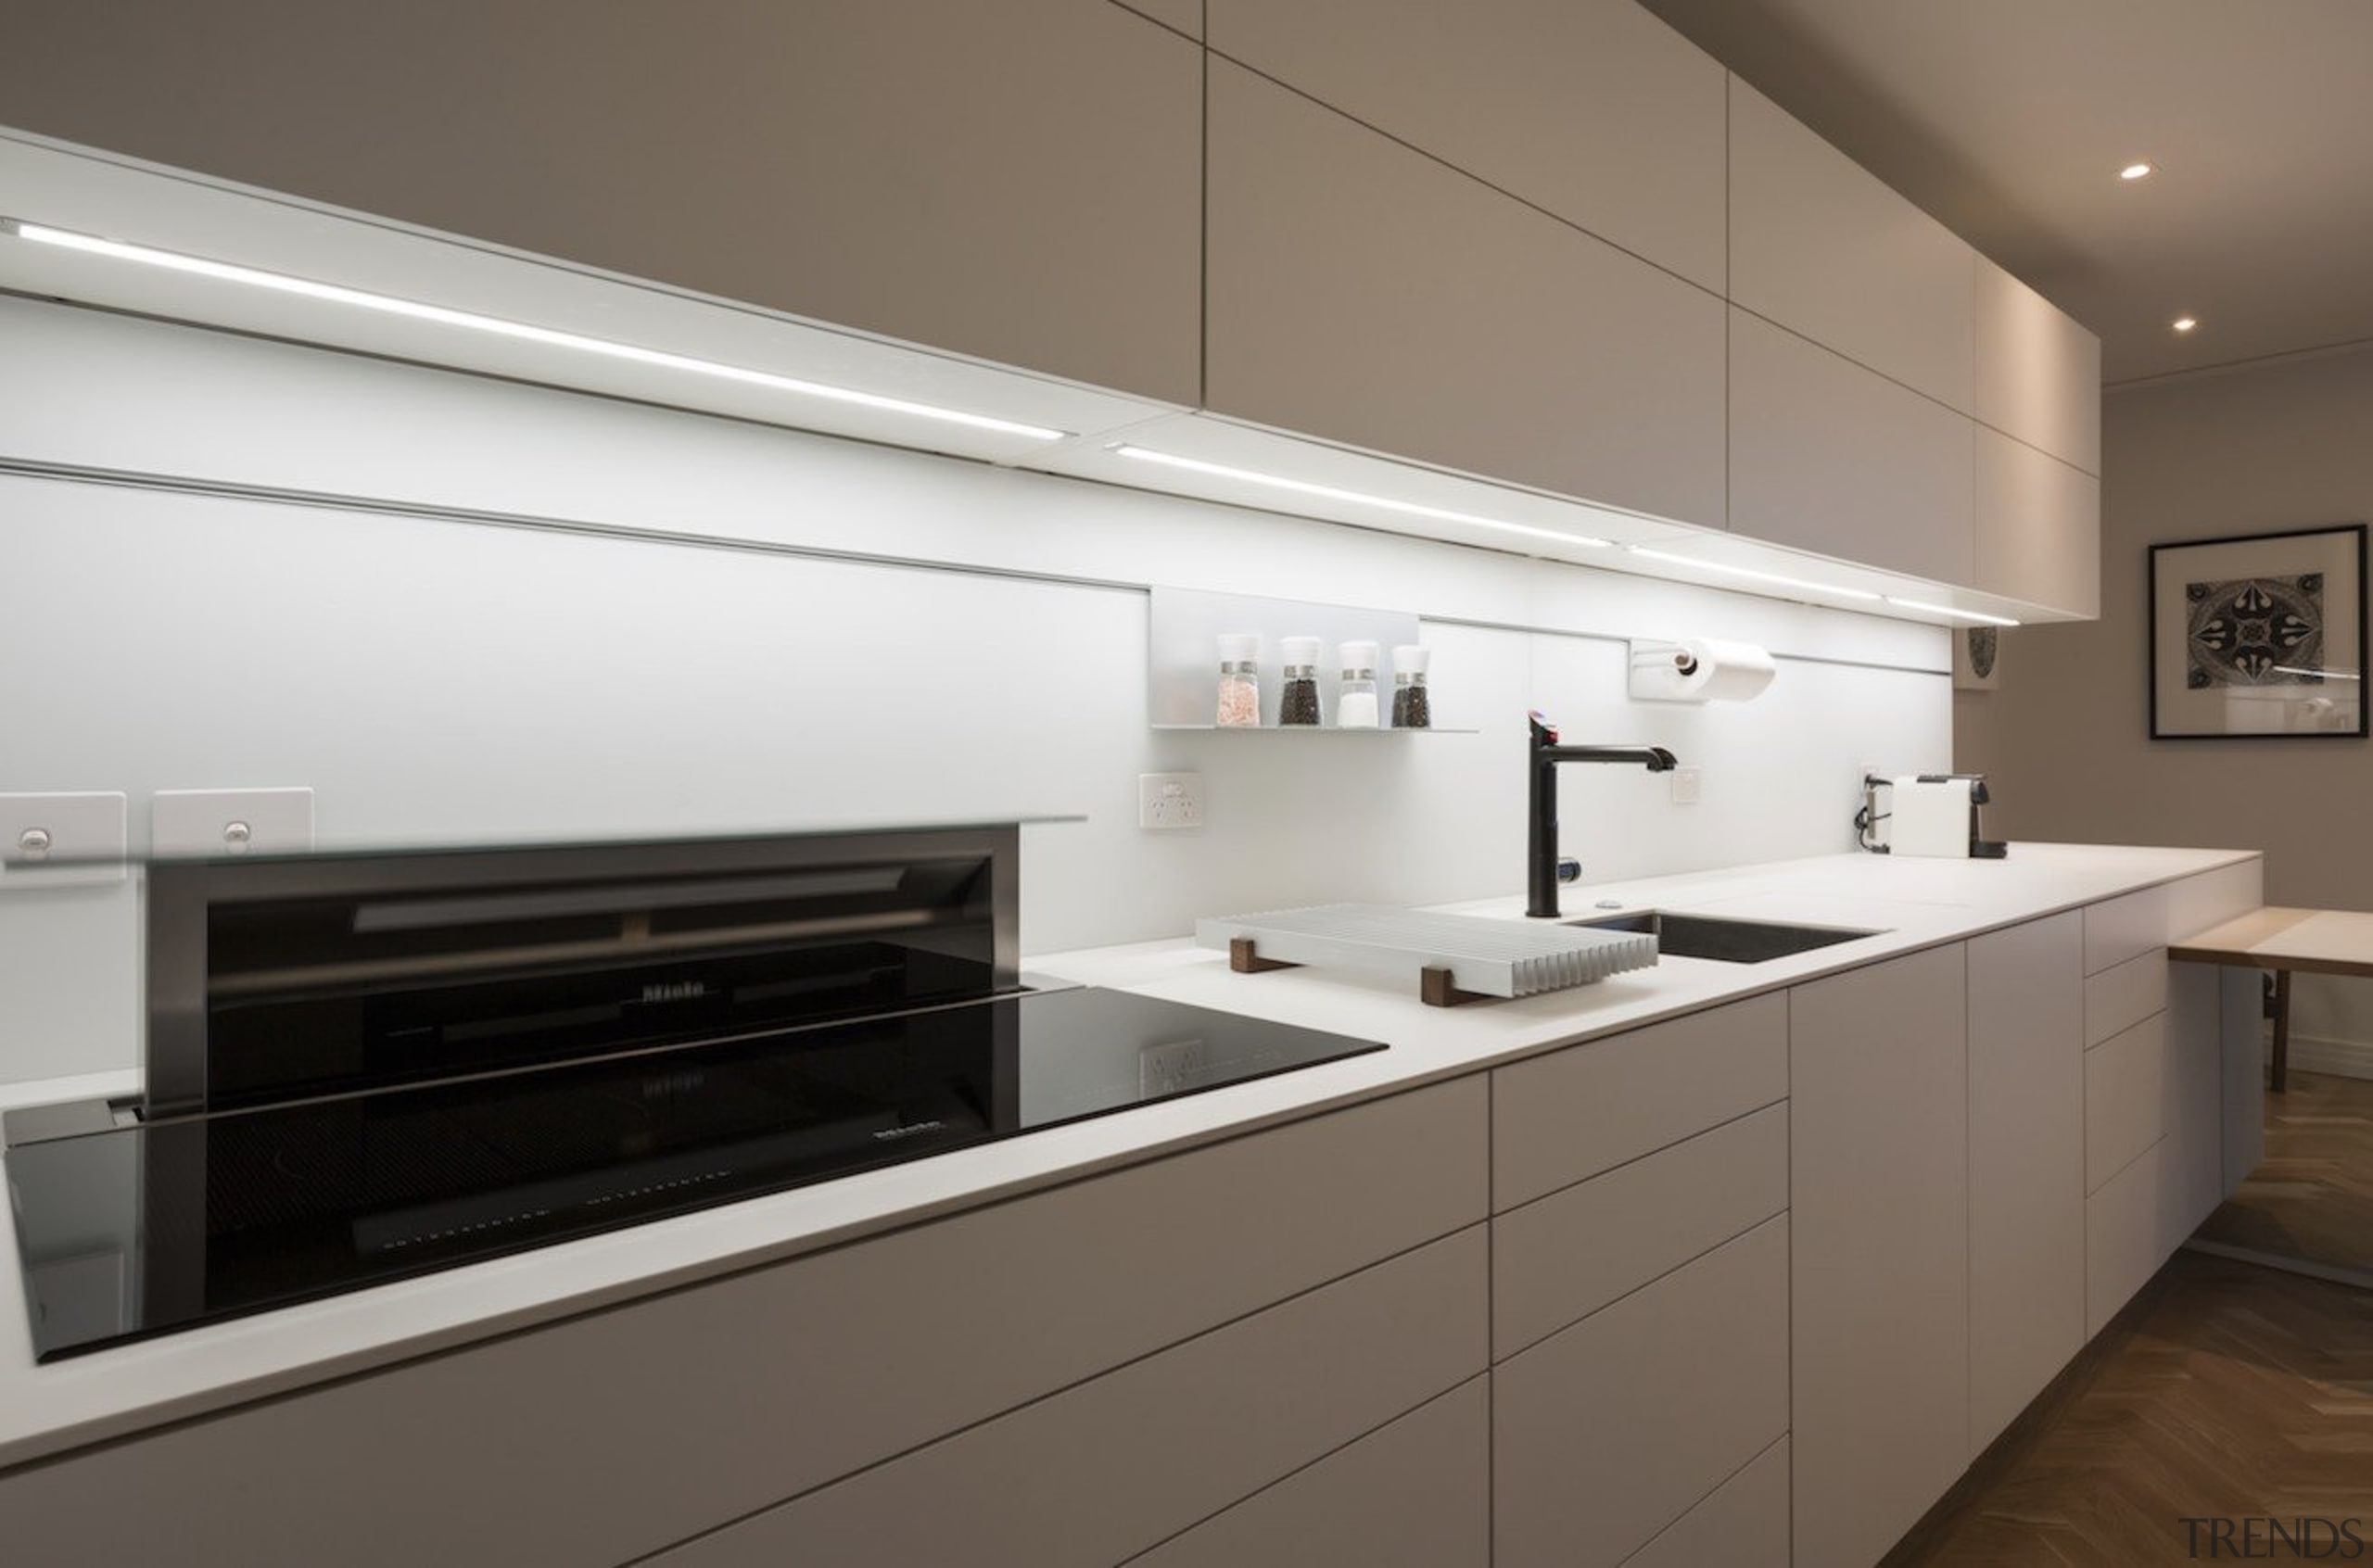 Highly Commended in the Category Imported Kitchen - cabinetry, countertop, cuisine classique, home appliance, interior design, kitchen, kitchen stove, product design, gray